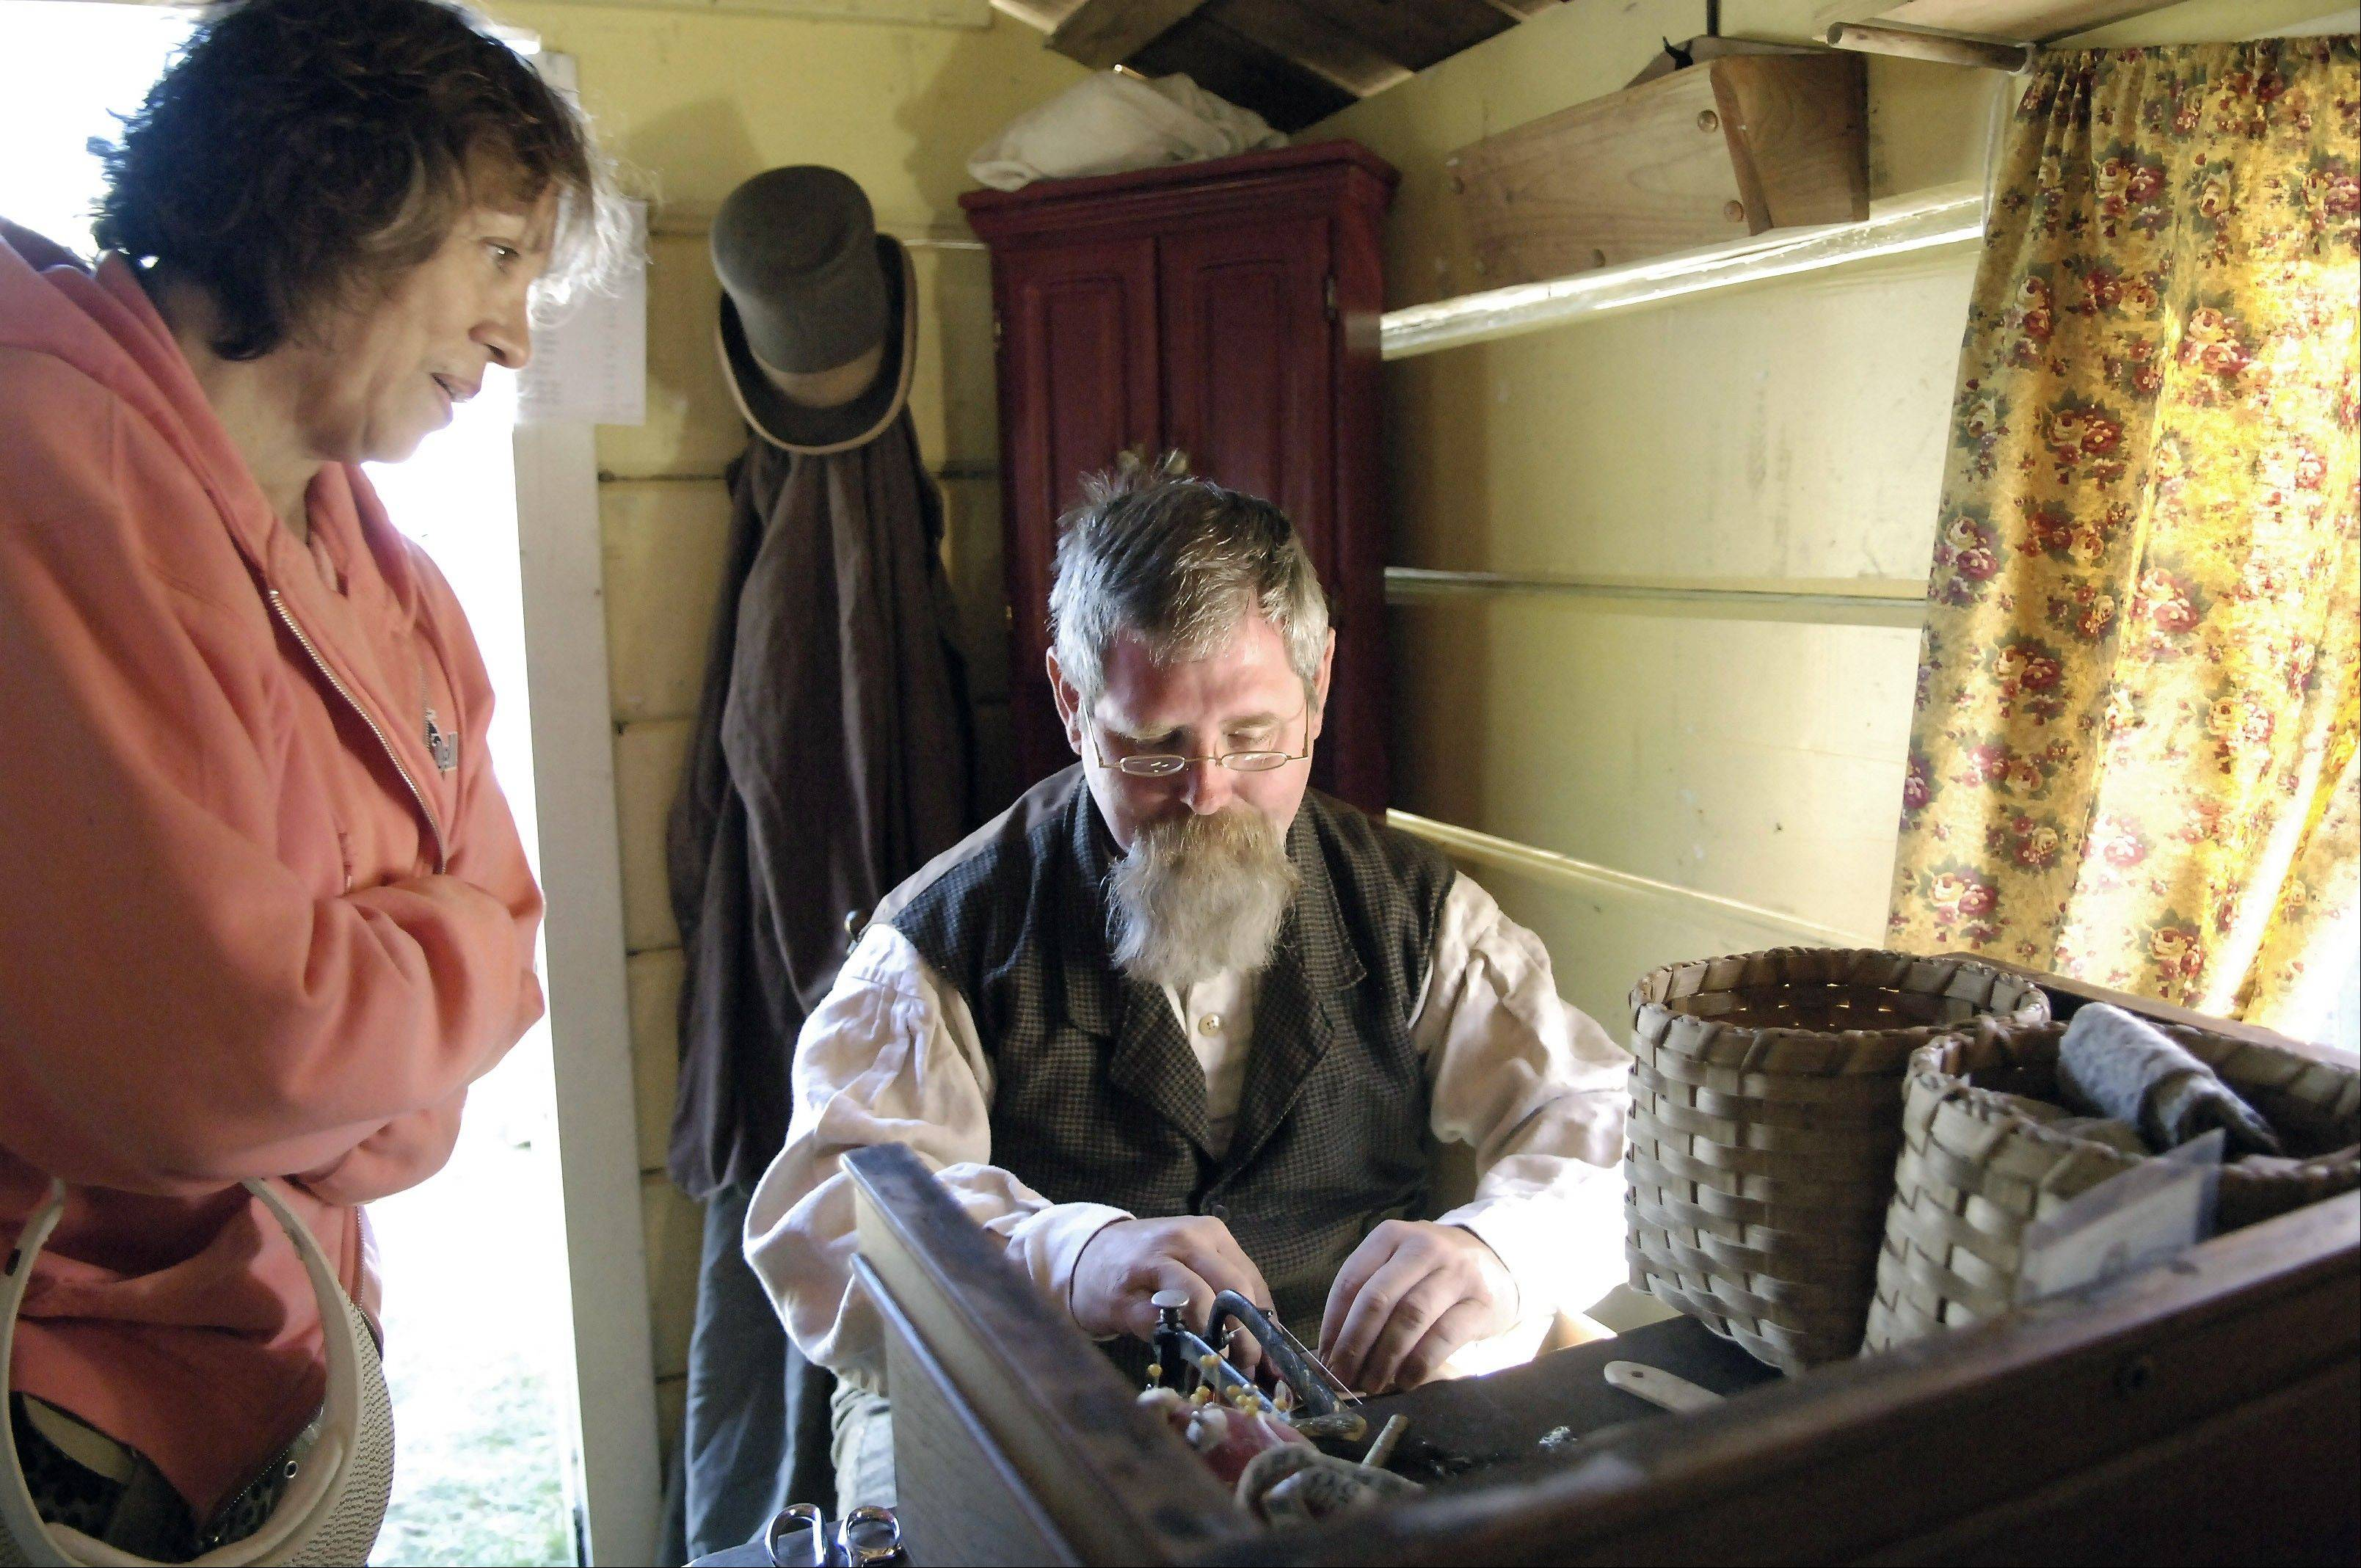 Rose Milo of Algonquin watches re-enactor Ken Gough of Elgin use an 1854 Wheeler and Wilson lockstitch sewing machine in an 1860s era cabin during a Civil War encampment at the 2008 Heritage Fest in West Dundee. This year, East Dundee and West Dundee will co-host the fest.